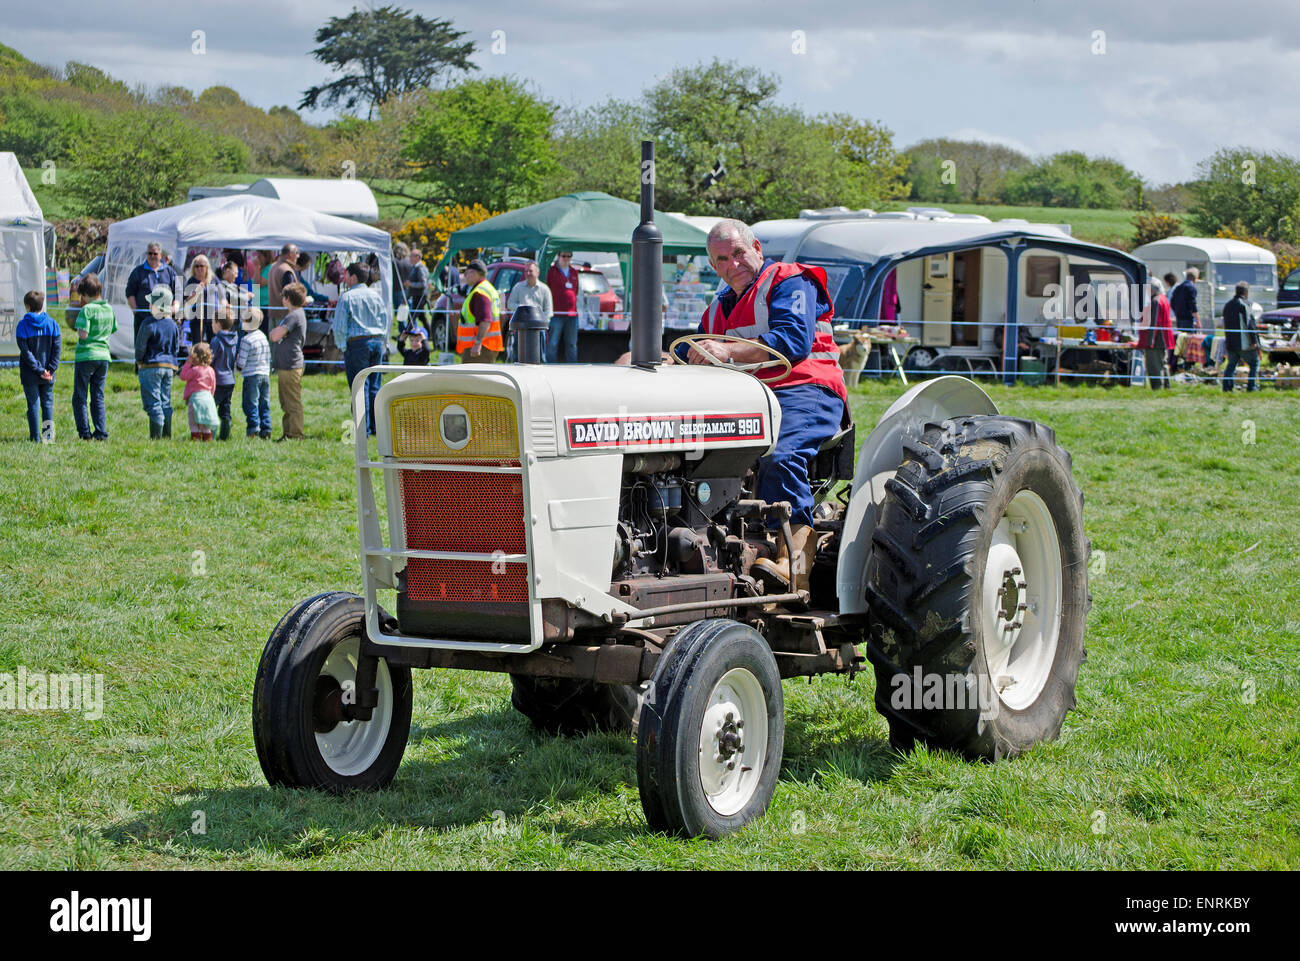 A David Brown selectamatic 990 vintage tractor at a rally in chacewater,  cornwall, uk